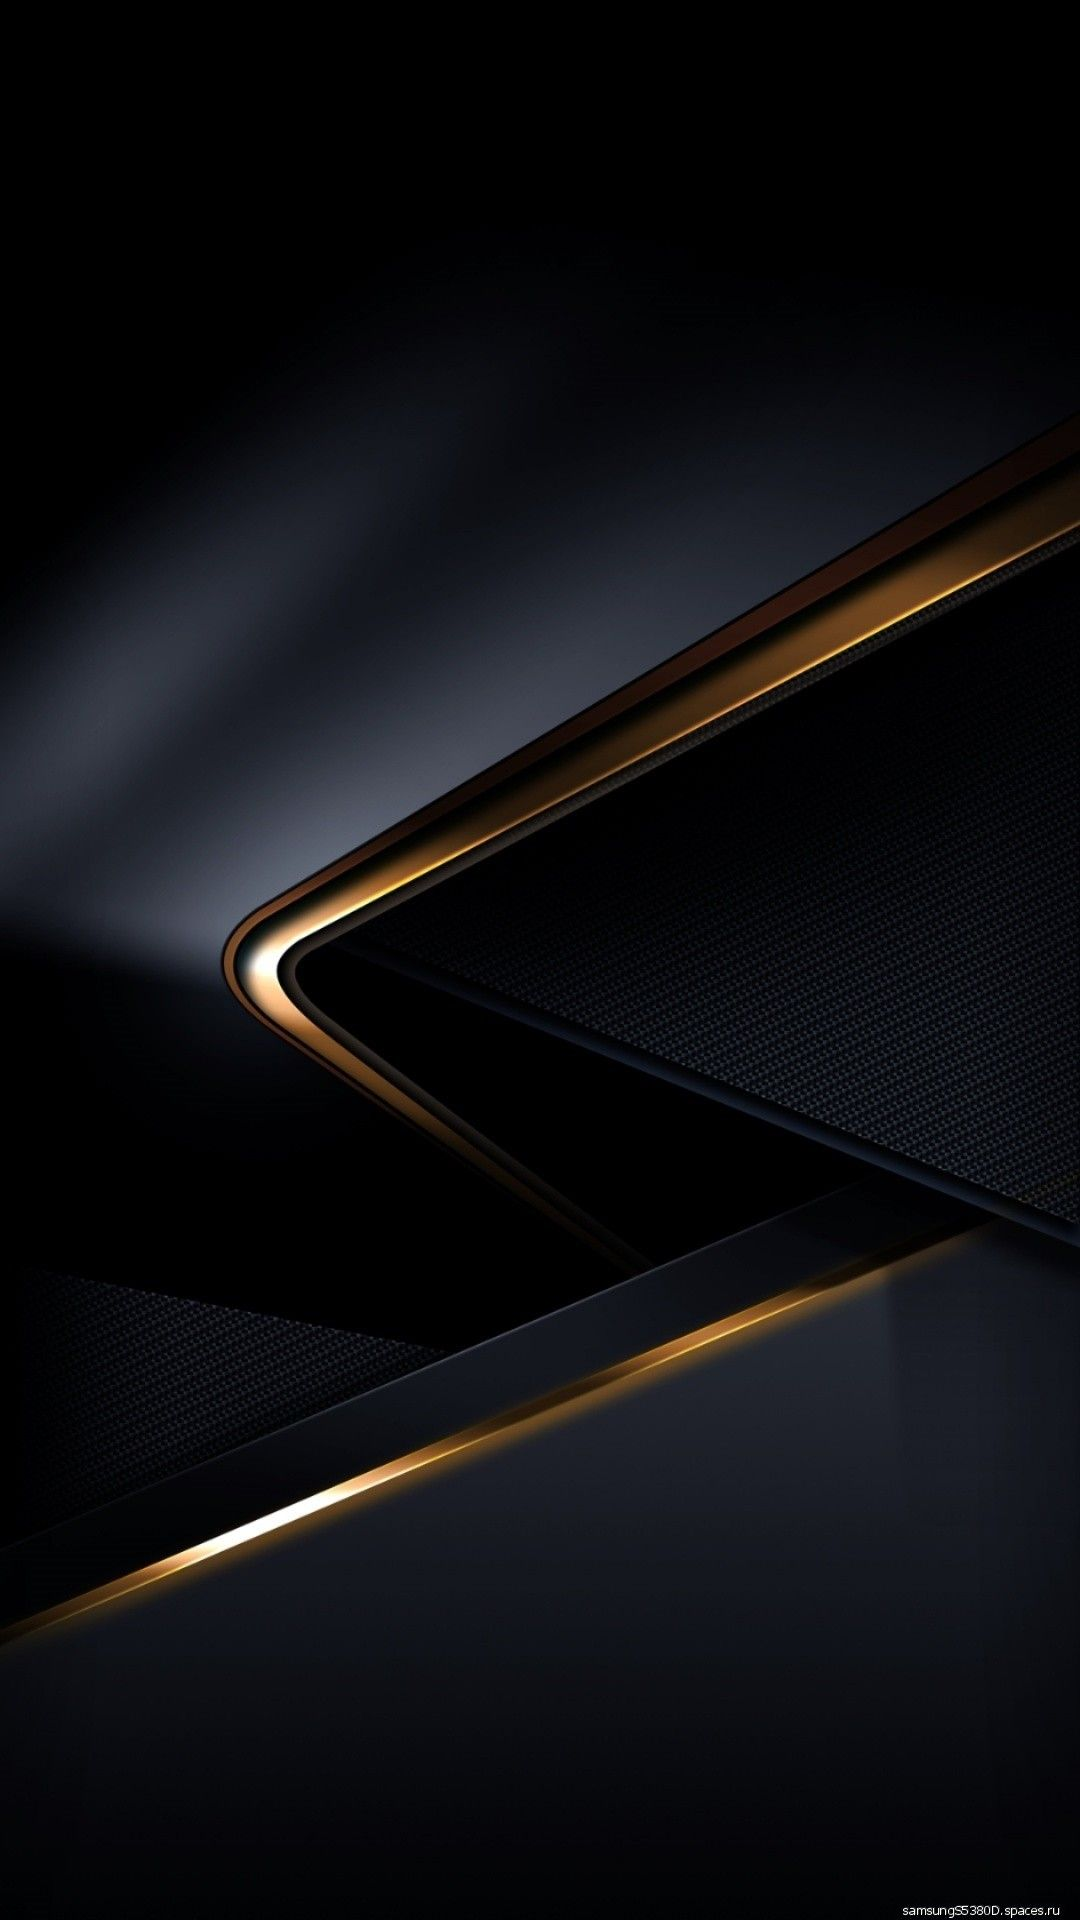 400 Wallpaper Black Xperia HD Paling Keren